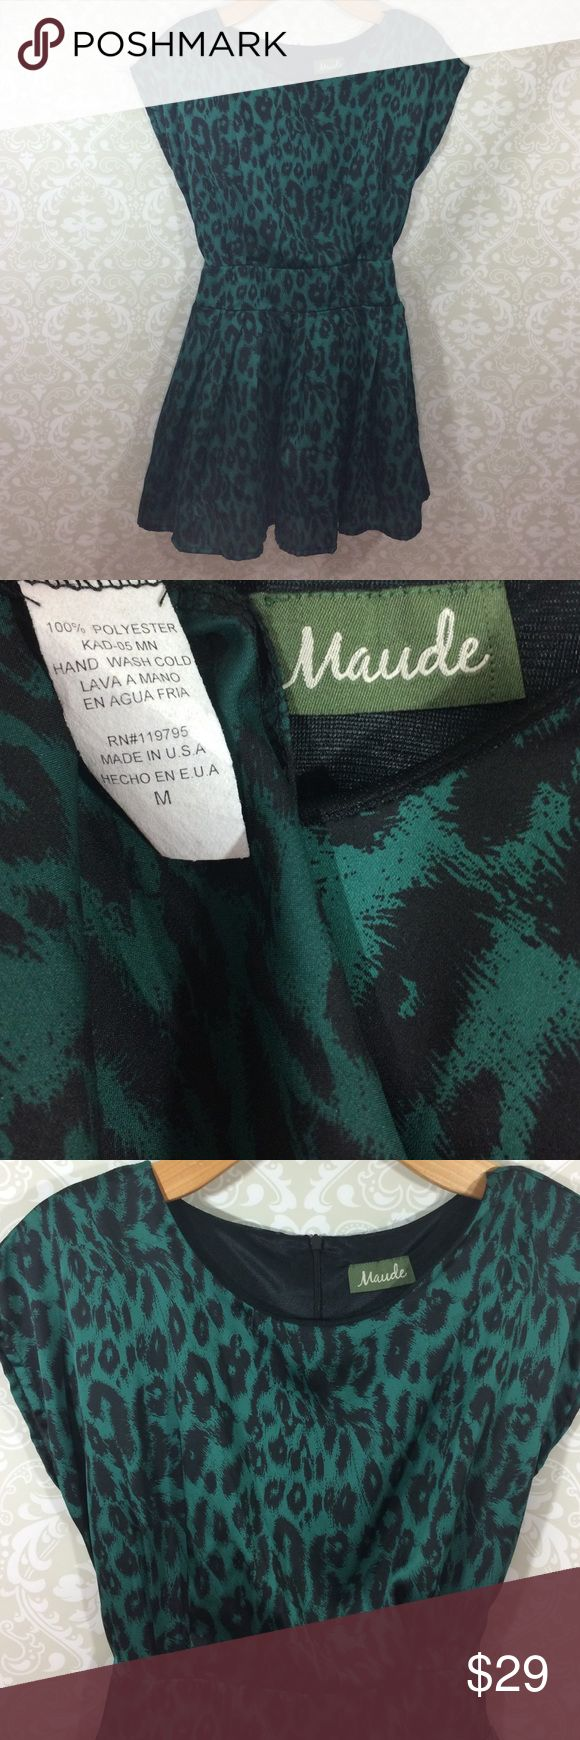 "Maude Black Green Animal Print Mini Dress Medium Very cute fully lined mini dress/long blouse. Personally I'd wear this would leggings, but I'm 5'7"" Perfect longer blouse, or mini dress. Hey maybe you just have the legs for it! 🤷🏽‍♂️ 20"" chest, 31"" top to bottom. Made in USA 🇺🇸 0061612 Maude Dresses Mini"